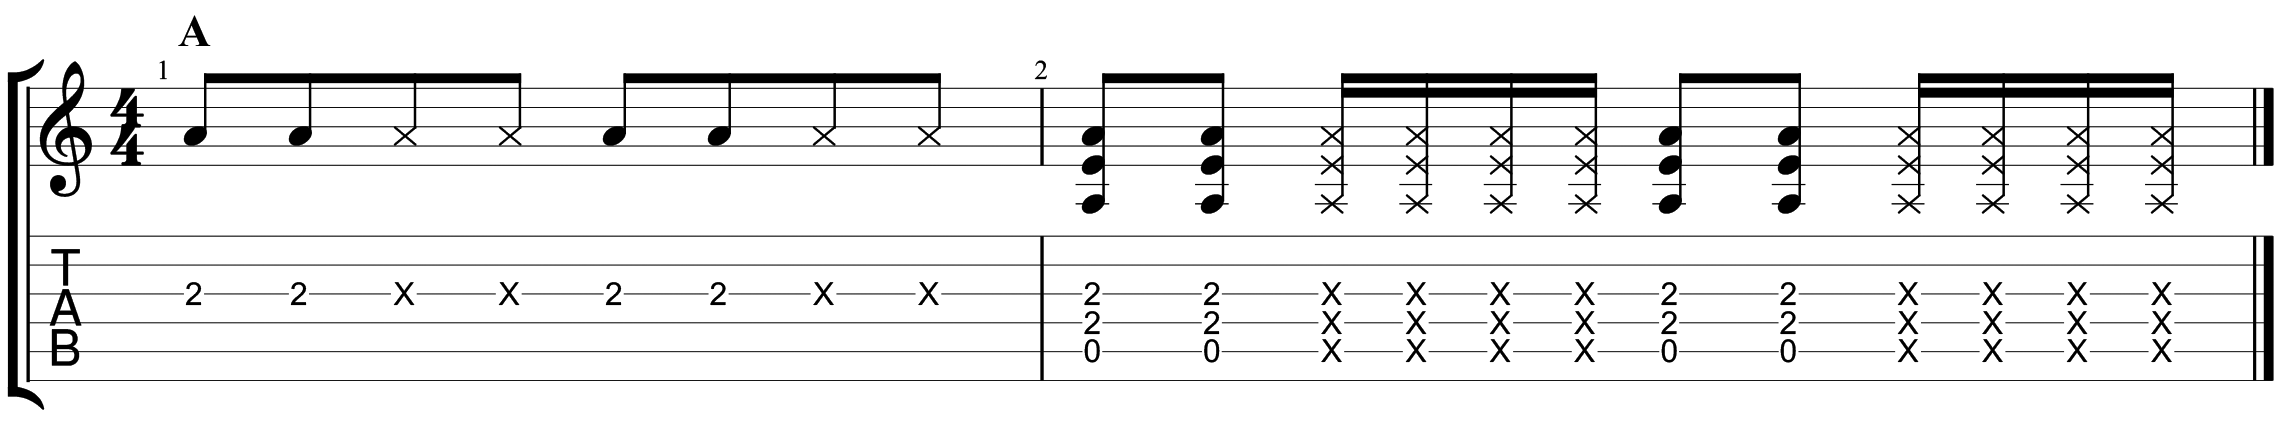 How to read guitar tab 7